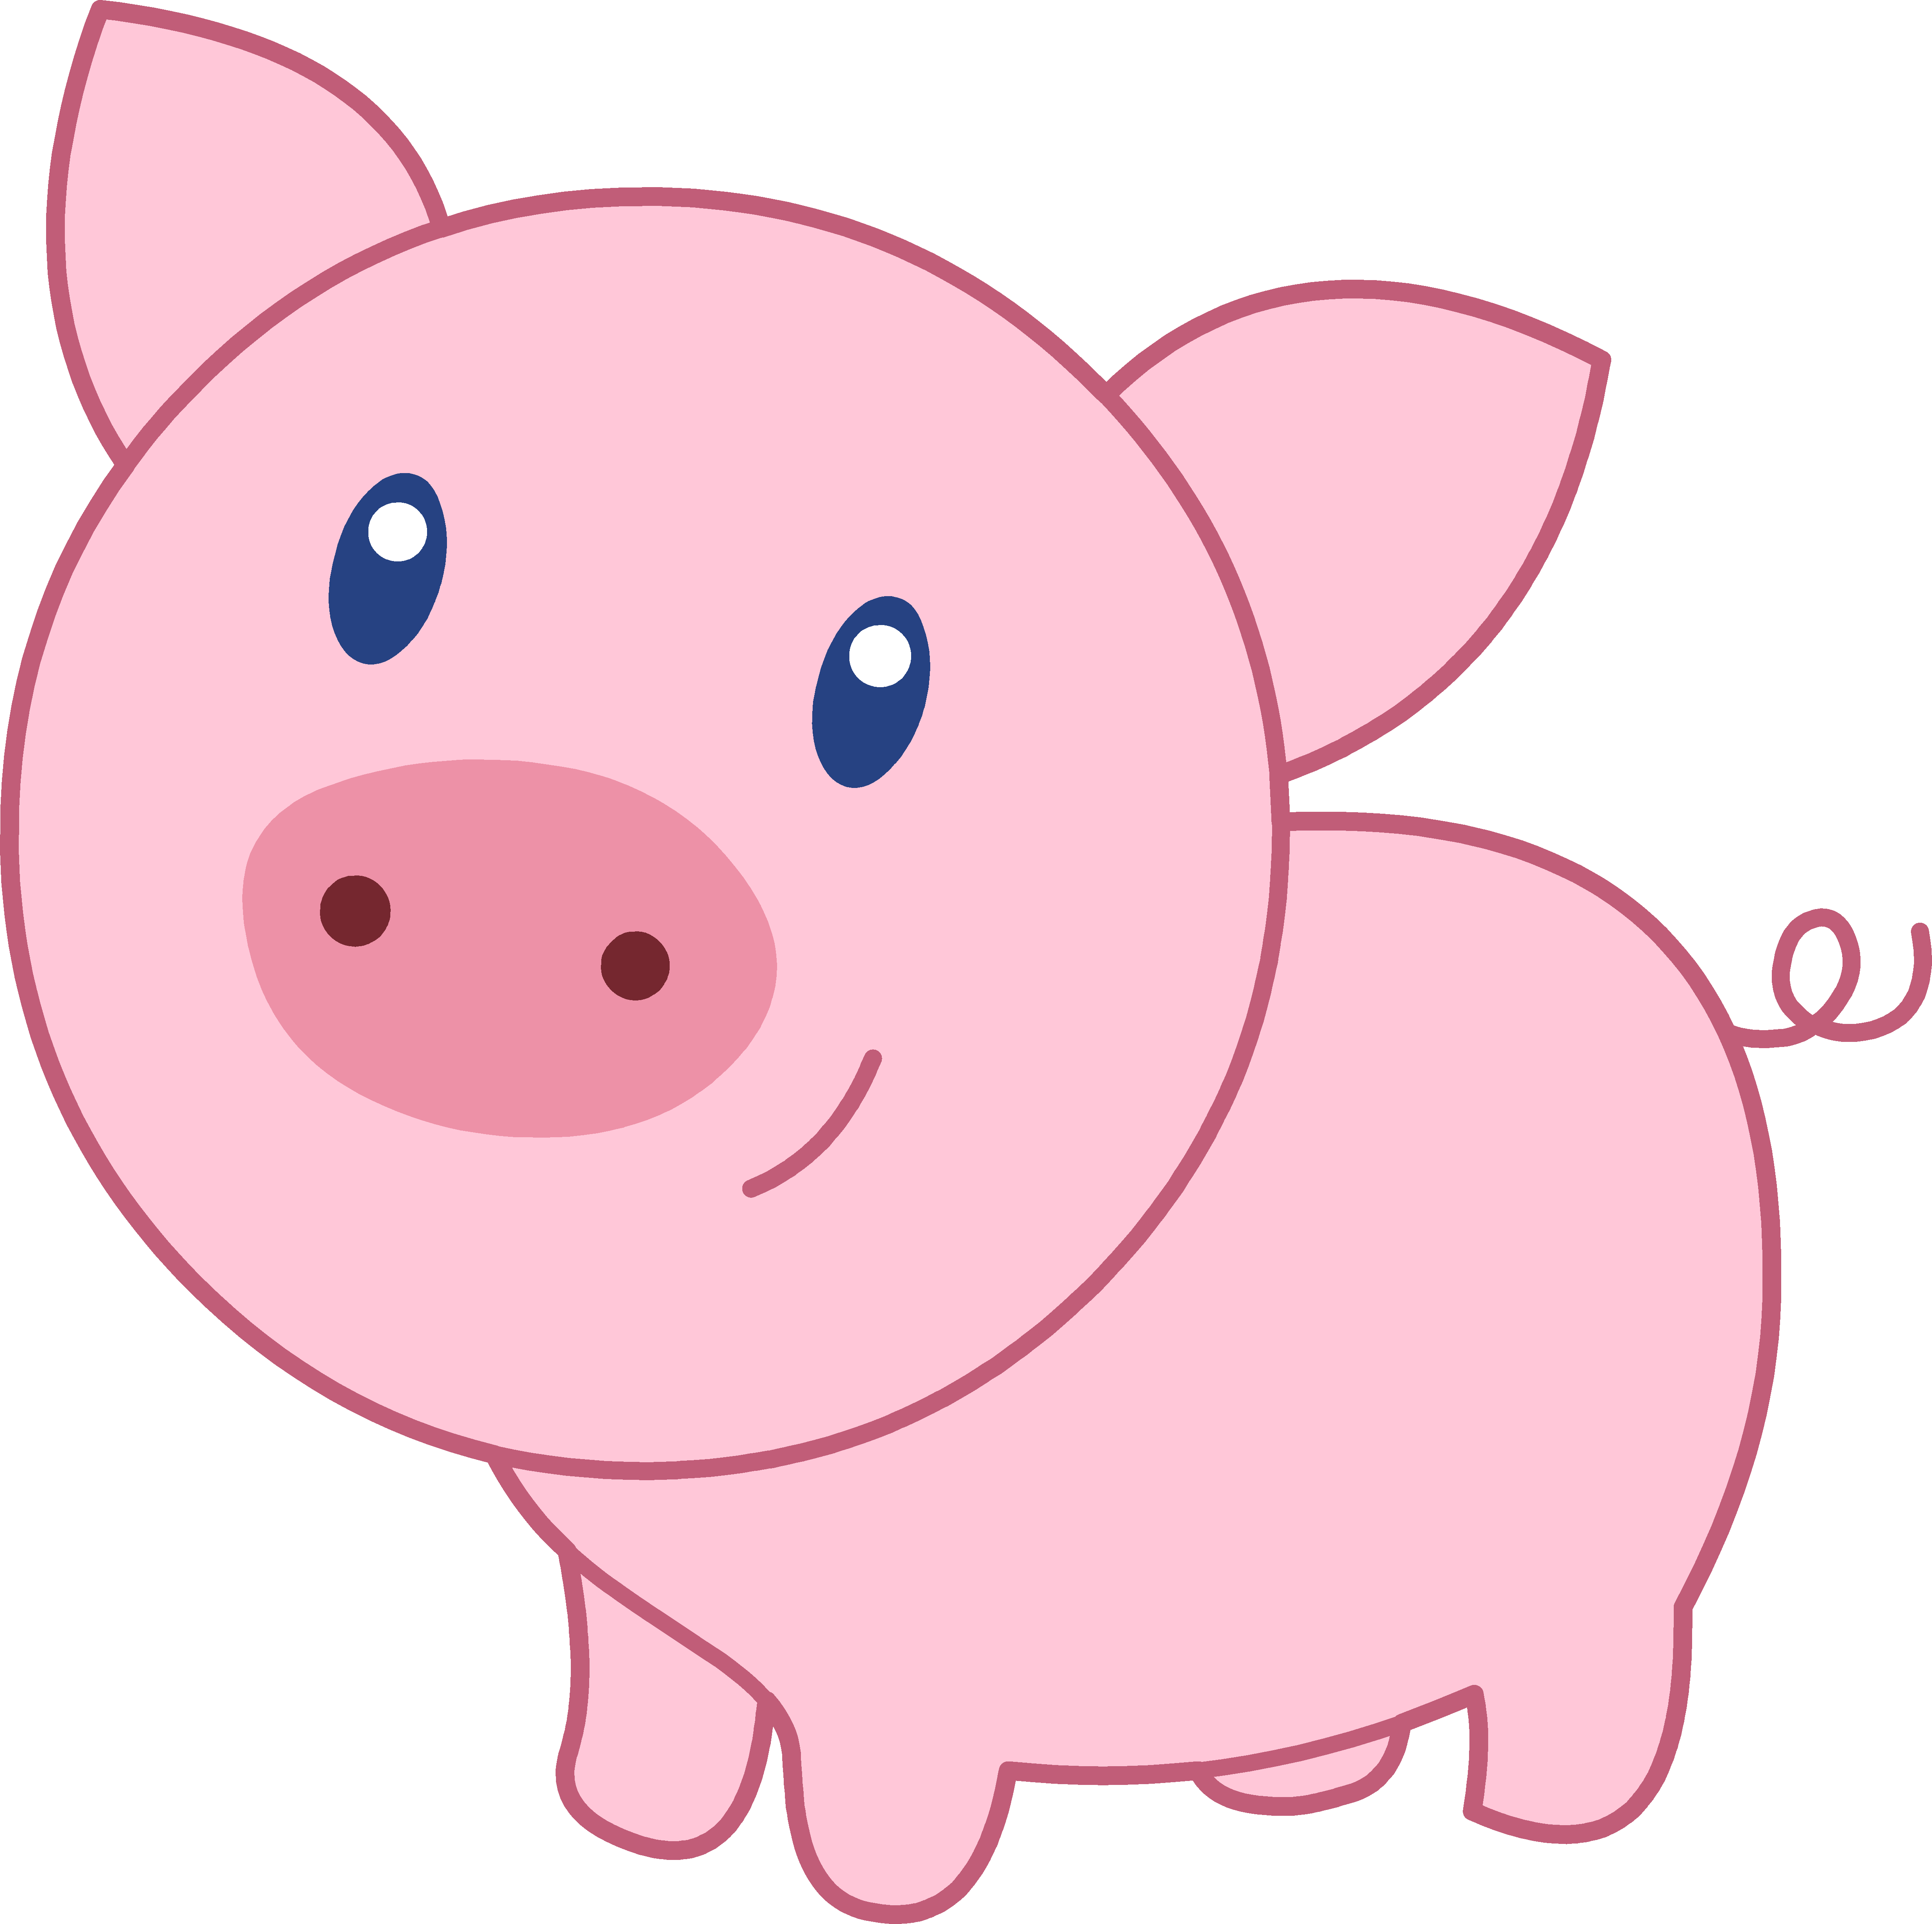 Cute happy pink nothin. Clipart animals pig